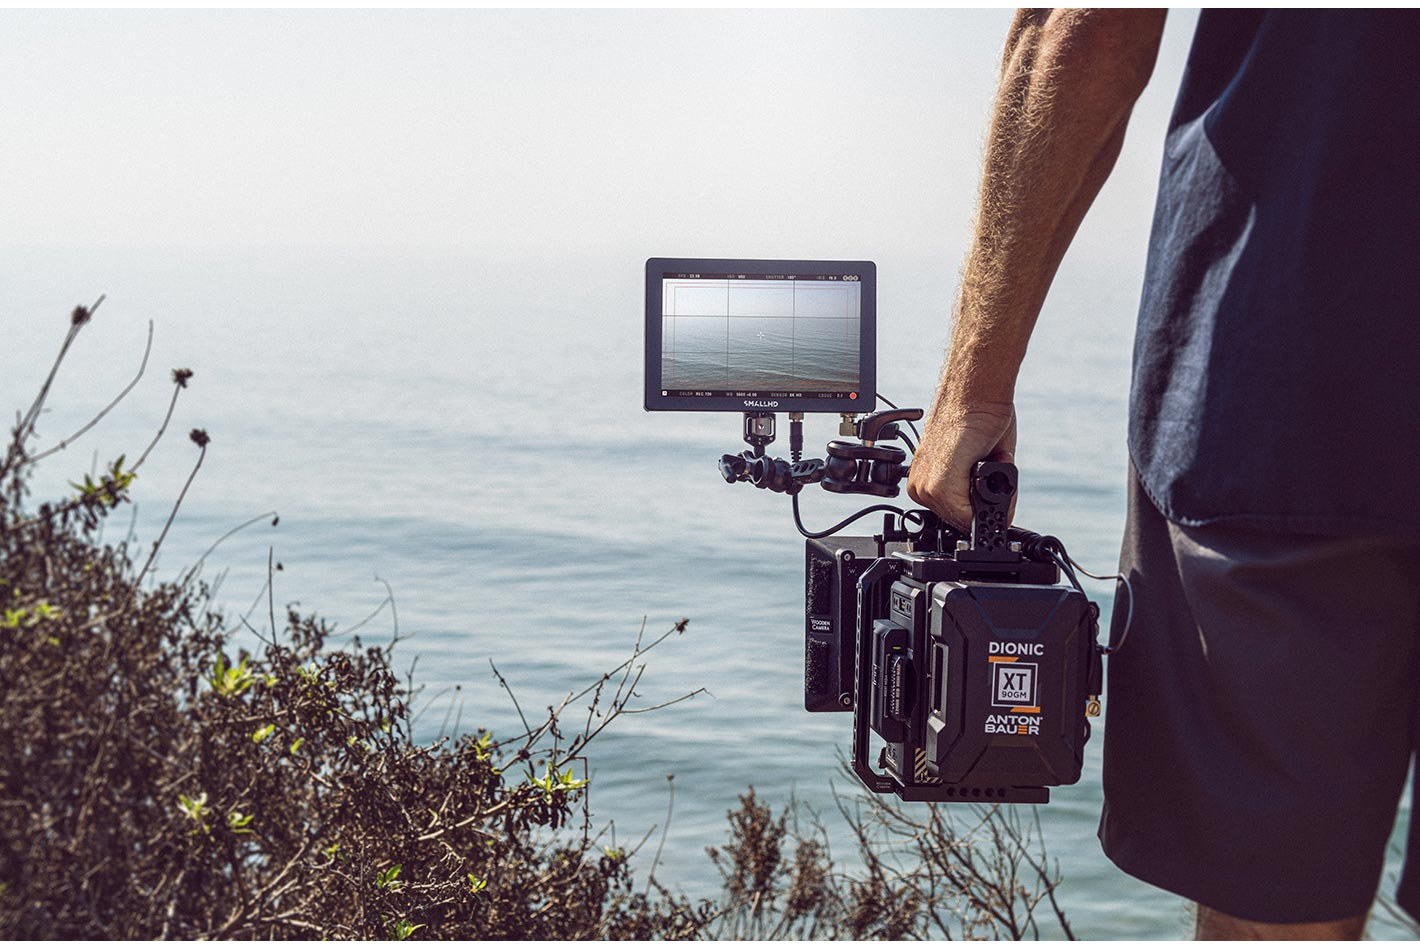 SmallHD Indie 7: a smart monitor for small budgets